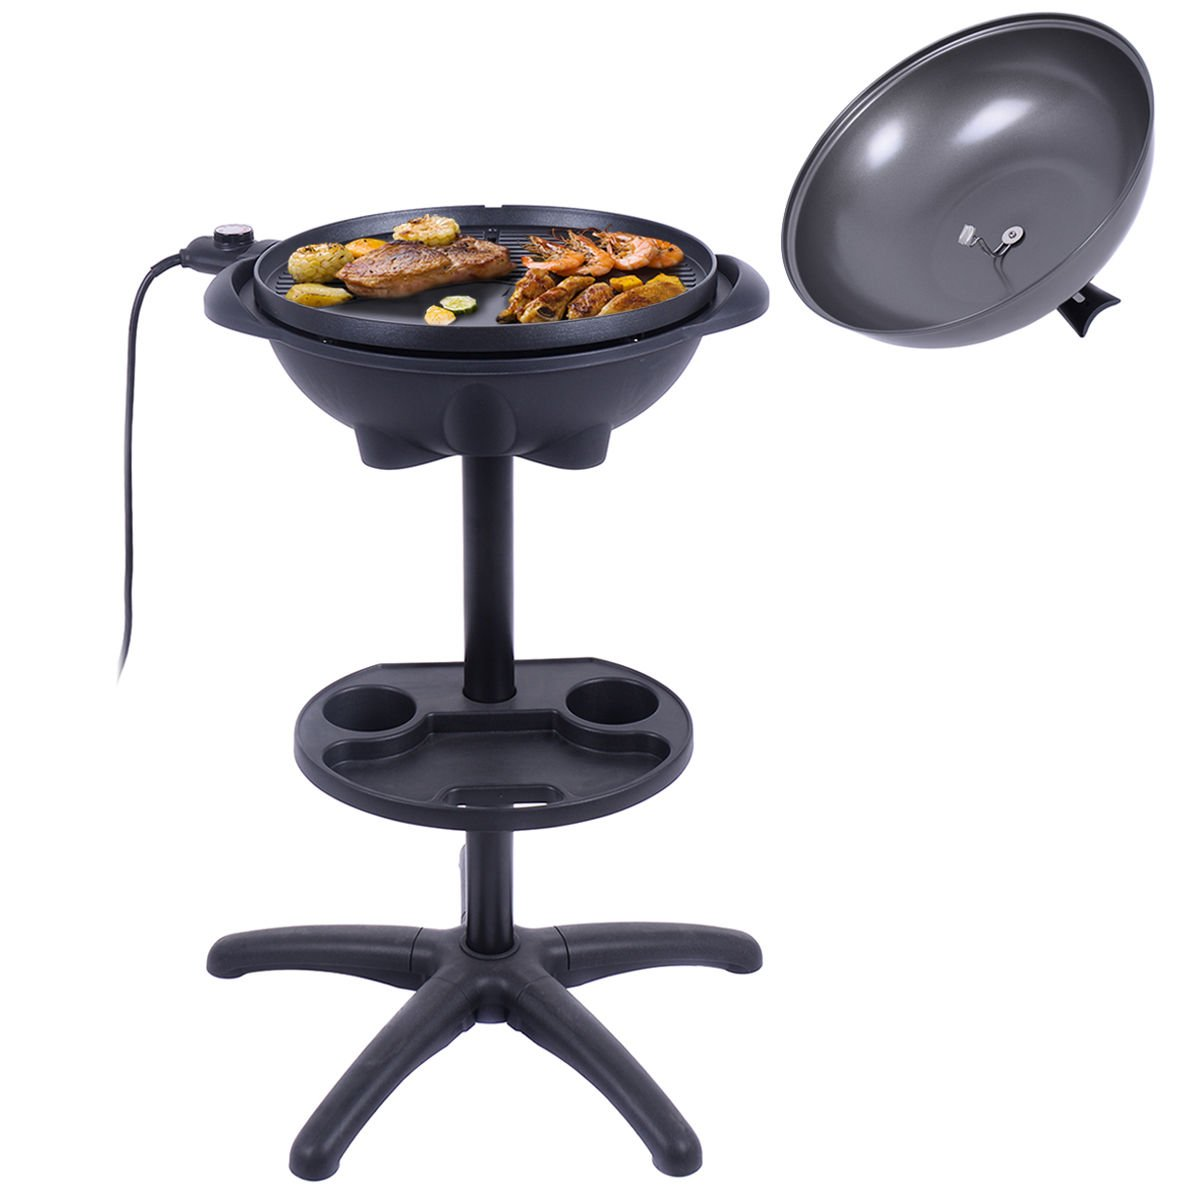 New Electric BBQ Grill 1350W Non-stick 4 Temperature Setting Outdoor Garden Camping by totoshop (Image #9)